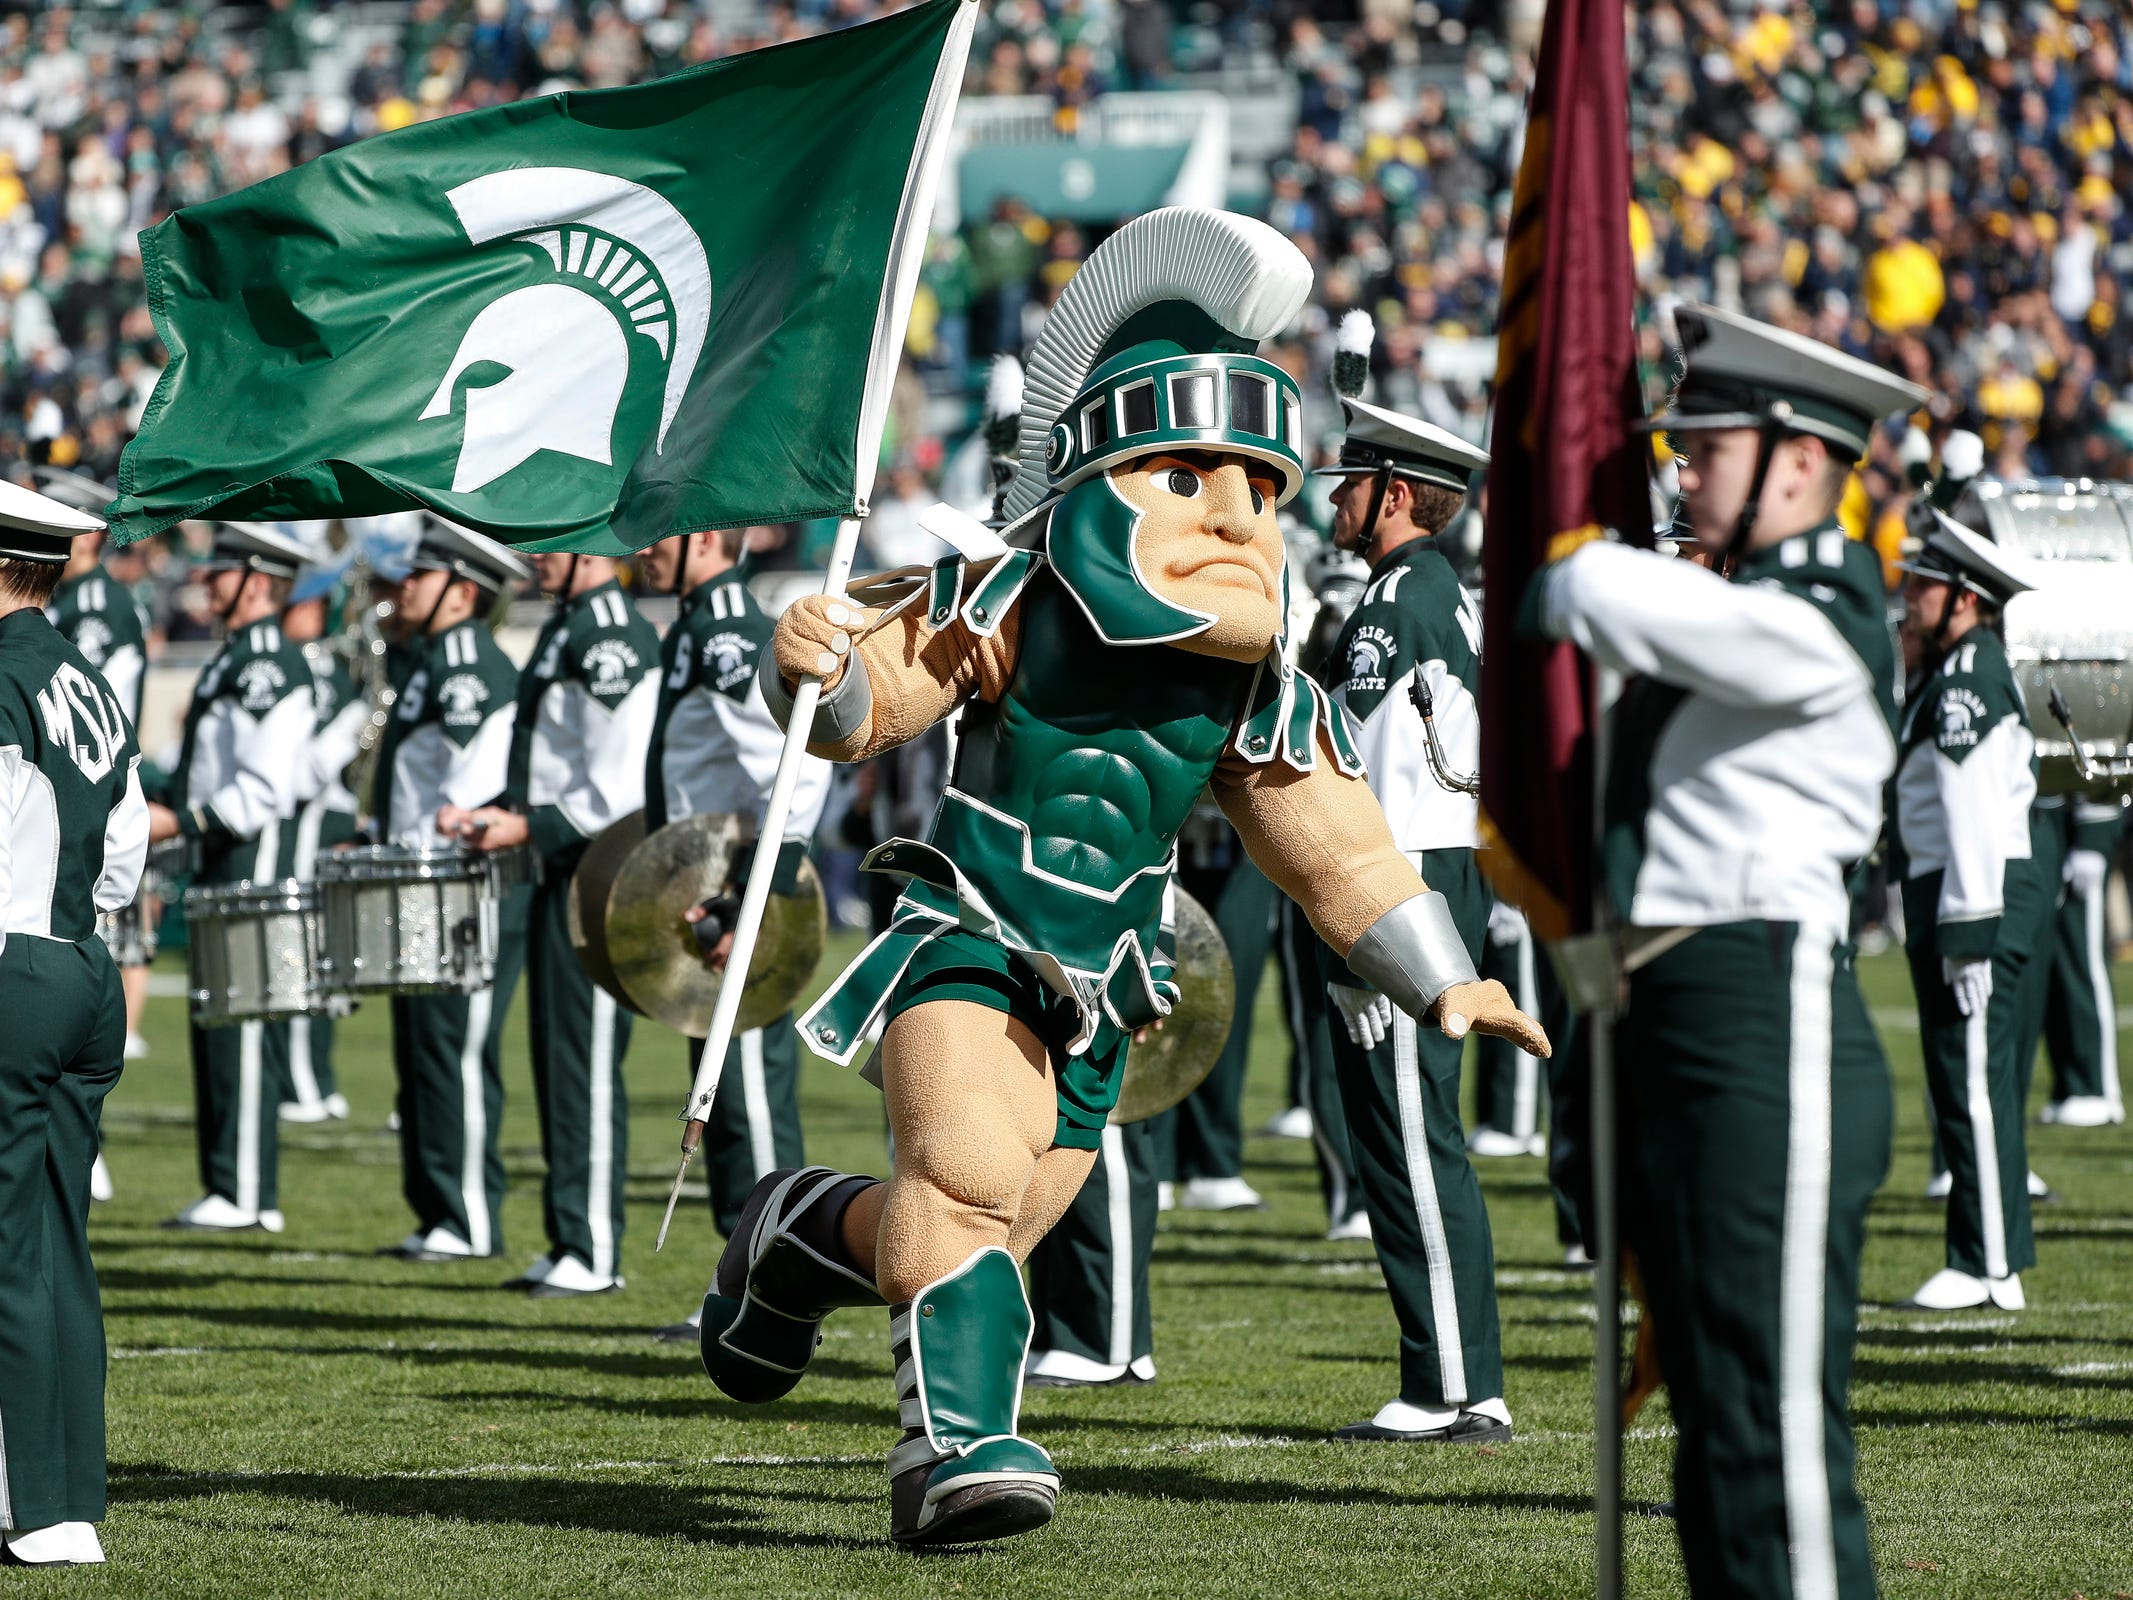 Sparty runs across the field before the Michigan game at Spartan Stadium on Saturday, Oct. 20, 2018.